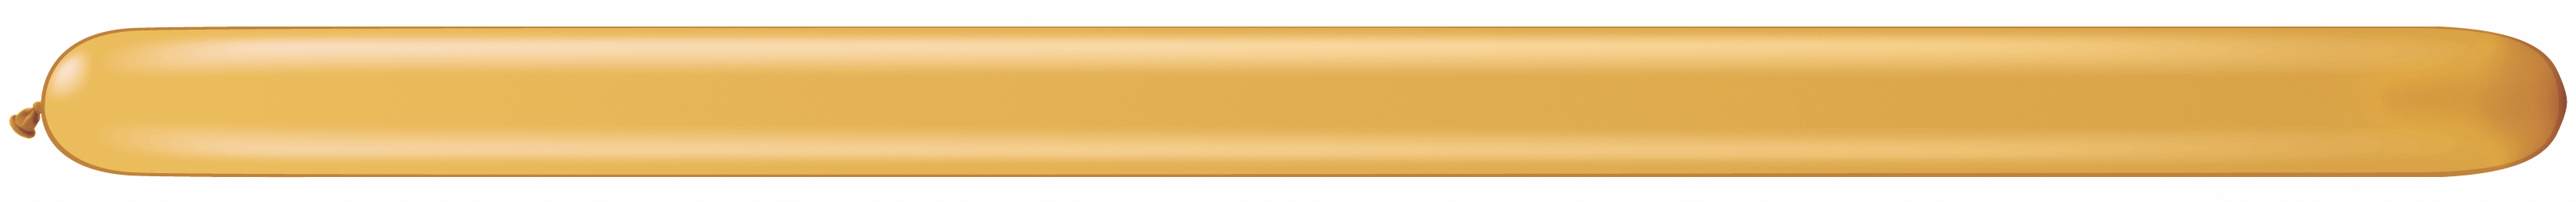 350Q Latex Balloons (100 Count) Gold